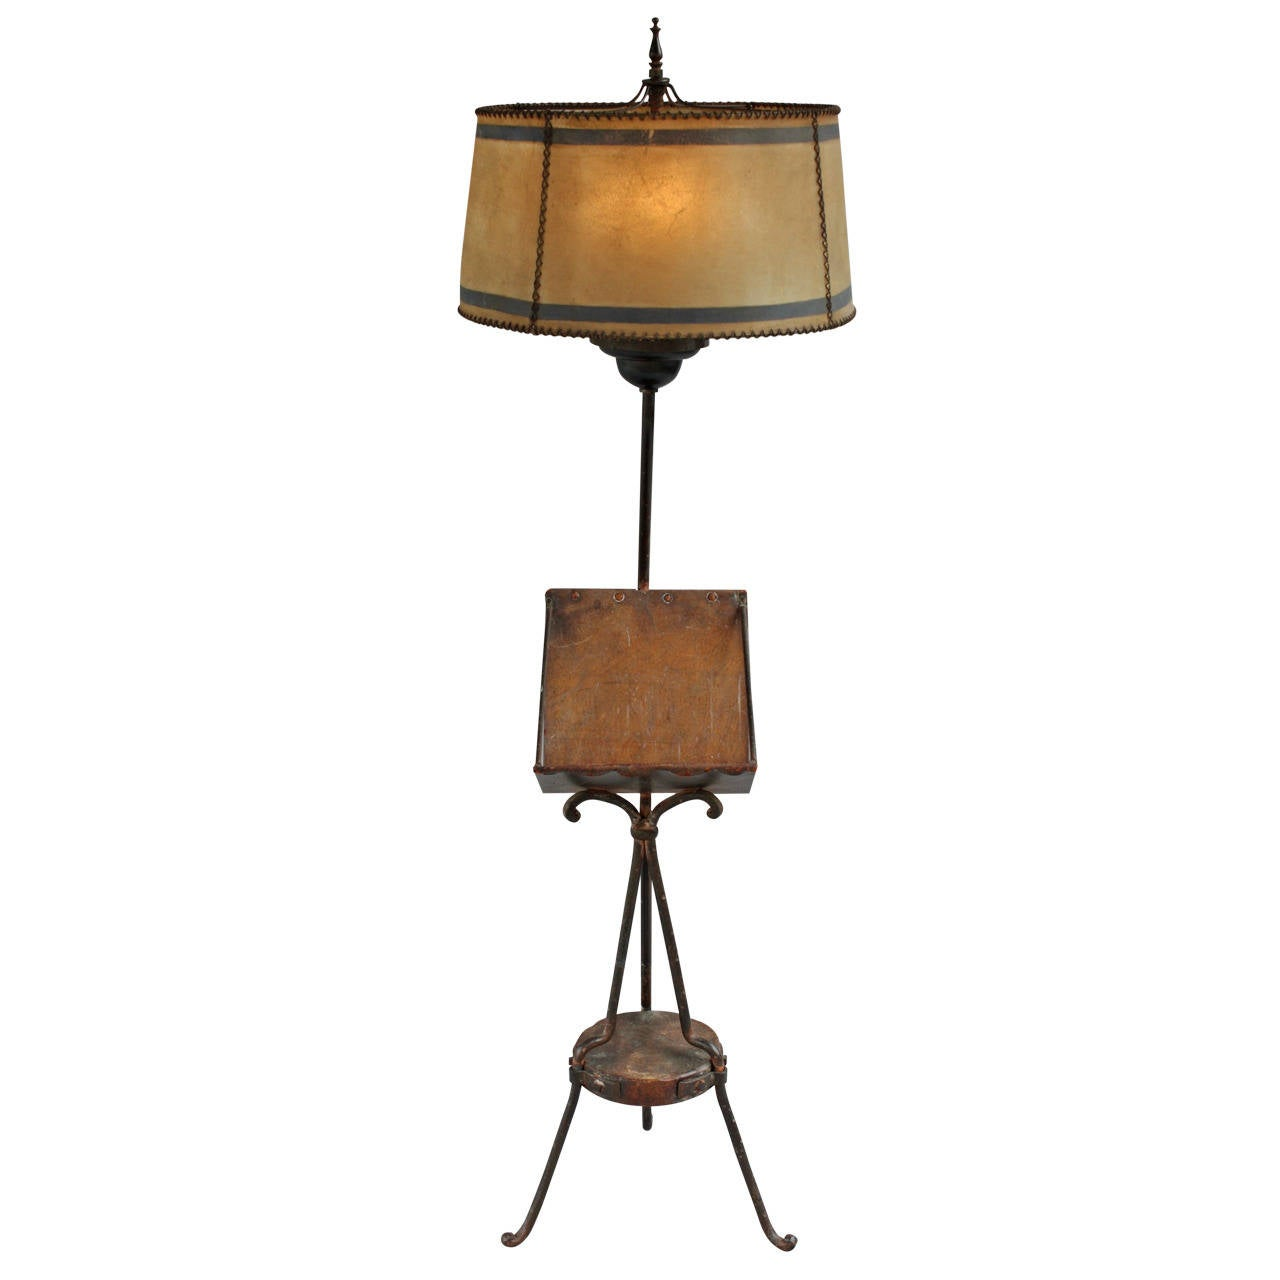 hard to find monterey style floor lamp with original shade at 1stdibs. Black Bedroom Furniture Sets. Home Design Ideas